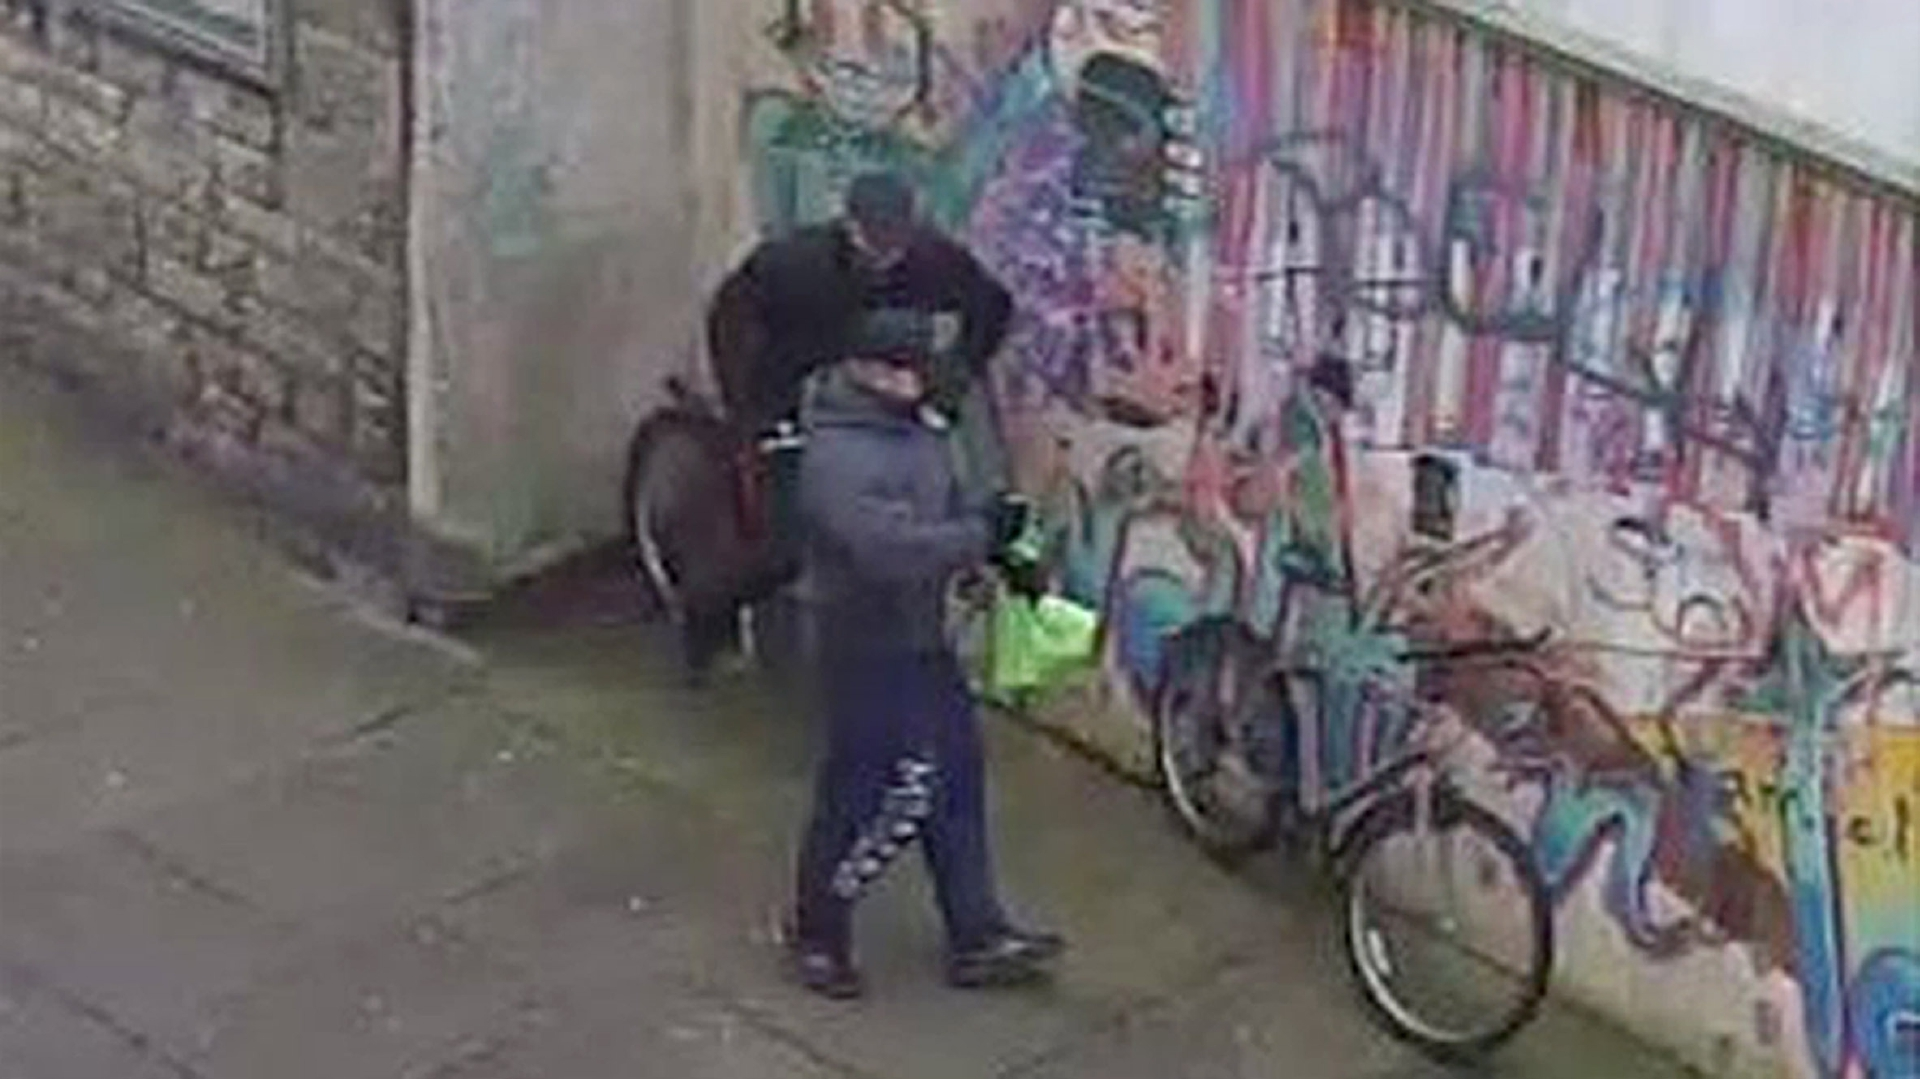 The two thieves made off on bikes after the raid.